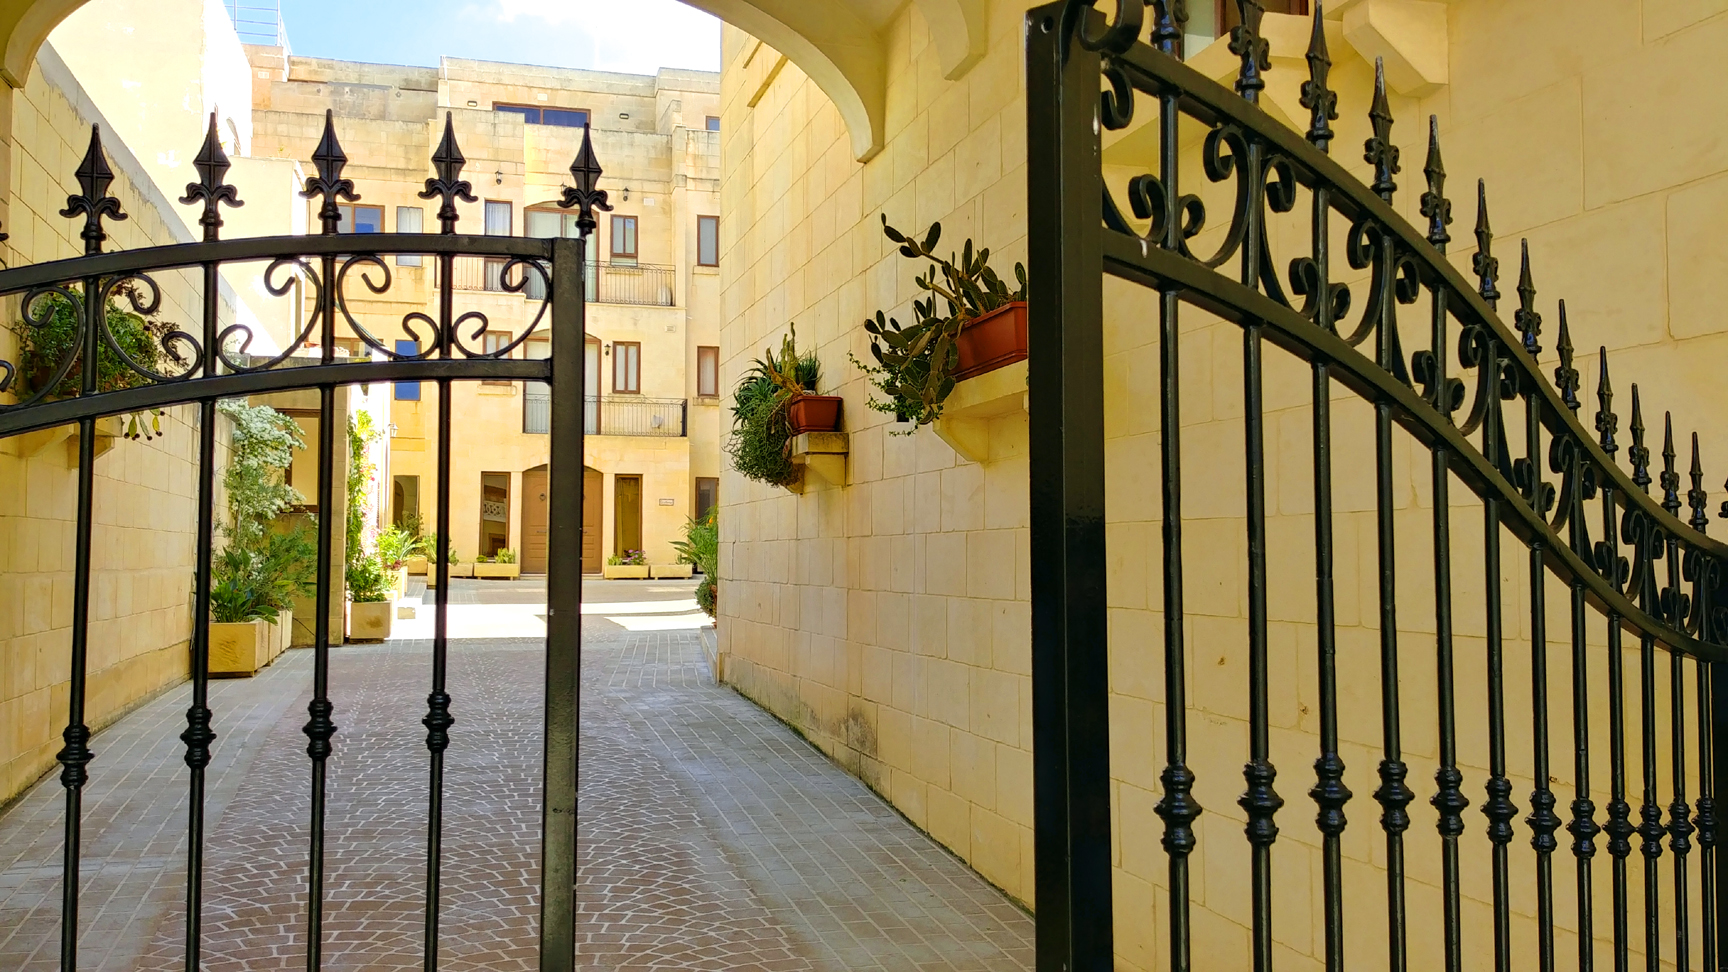 30-Days in Malta. Courtyard for Ghajnsielem Gozo apartment. Photo: Charlebois